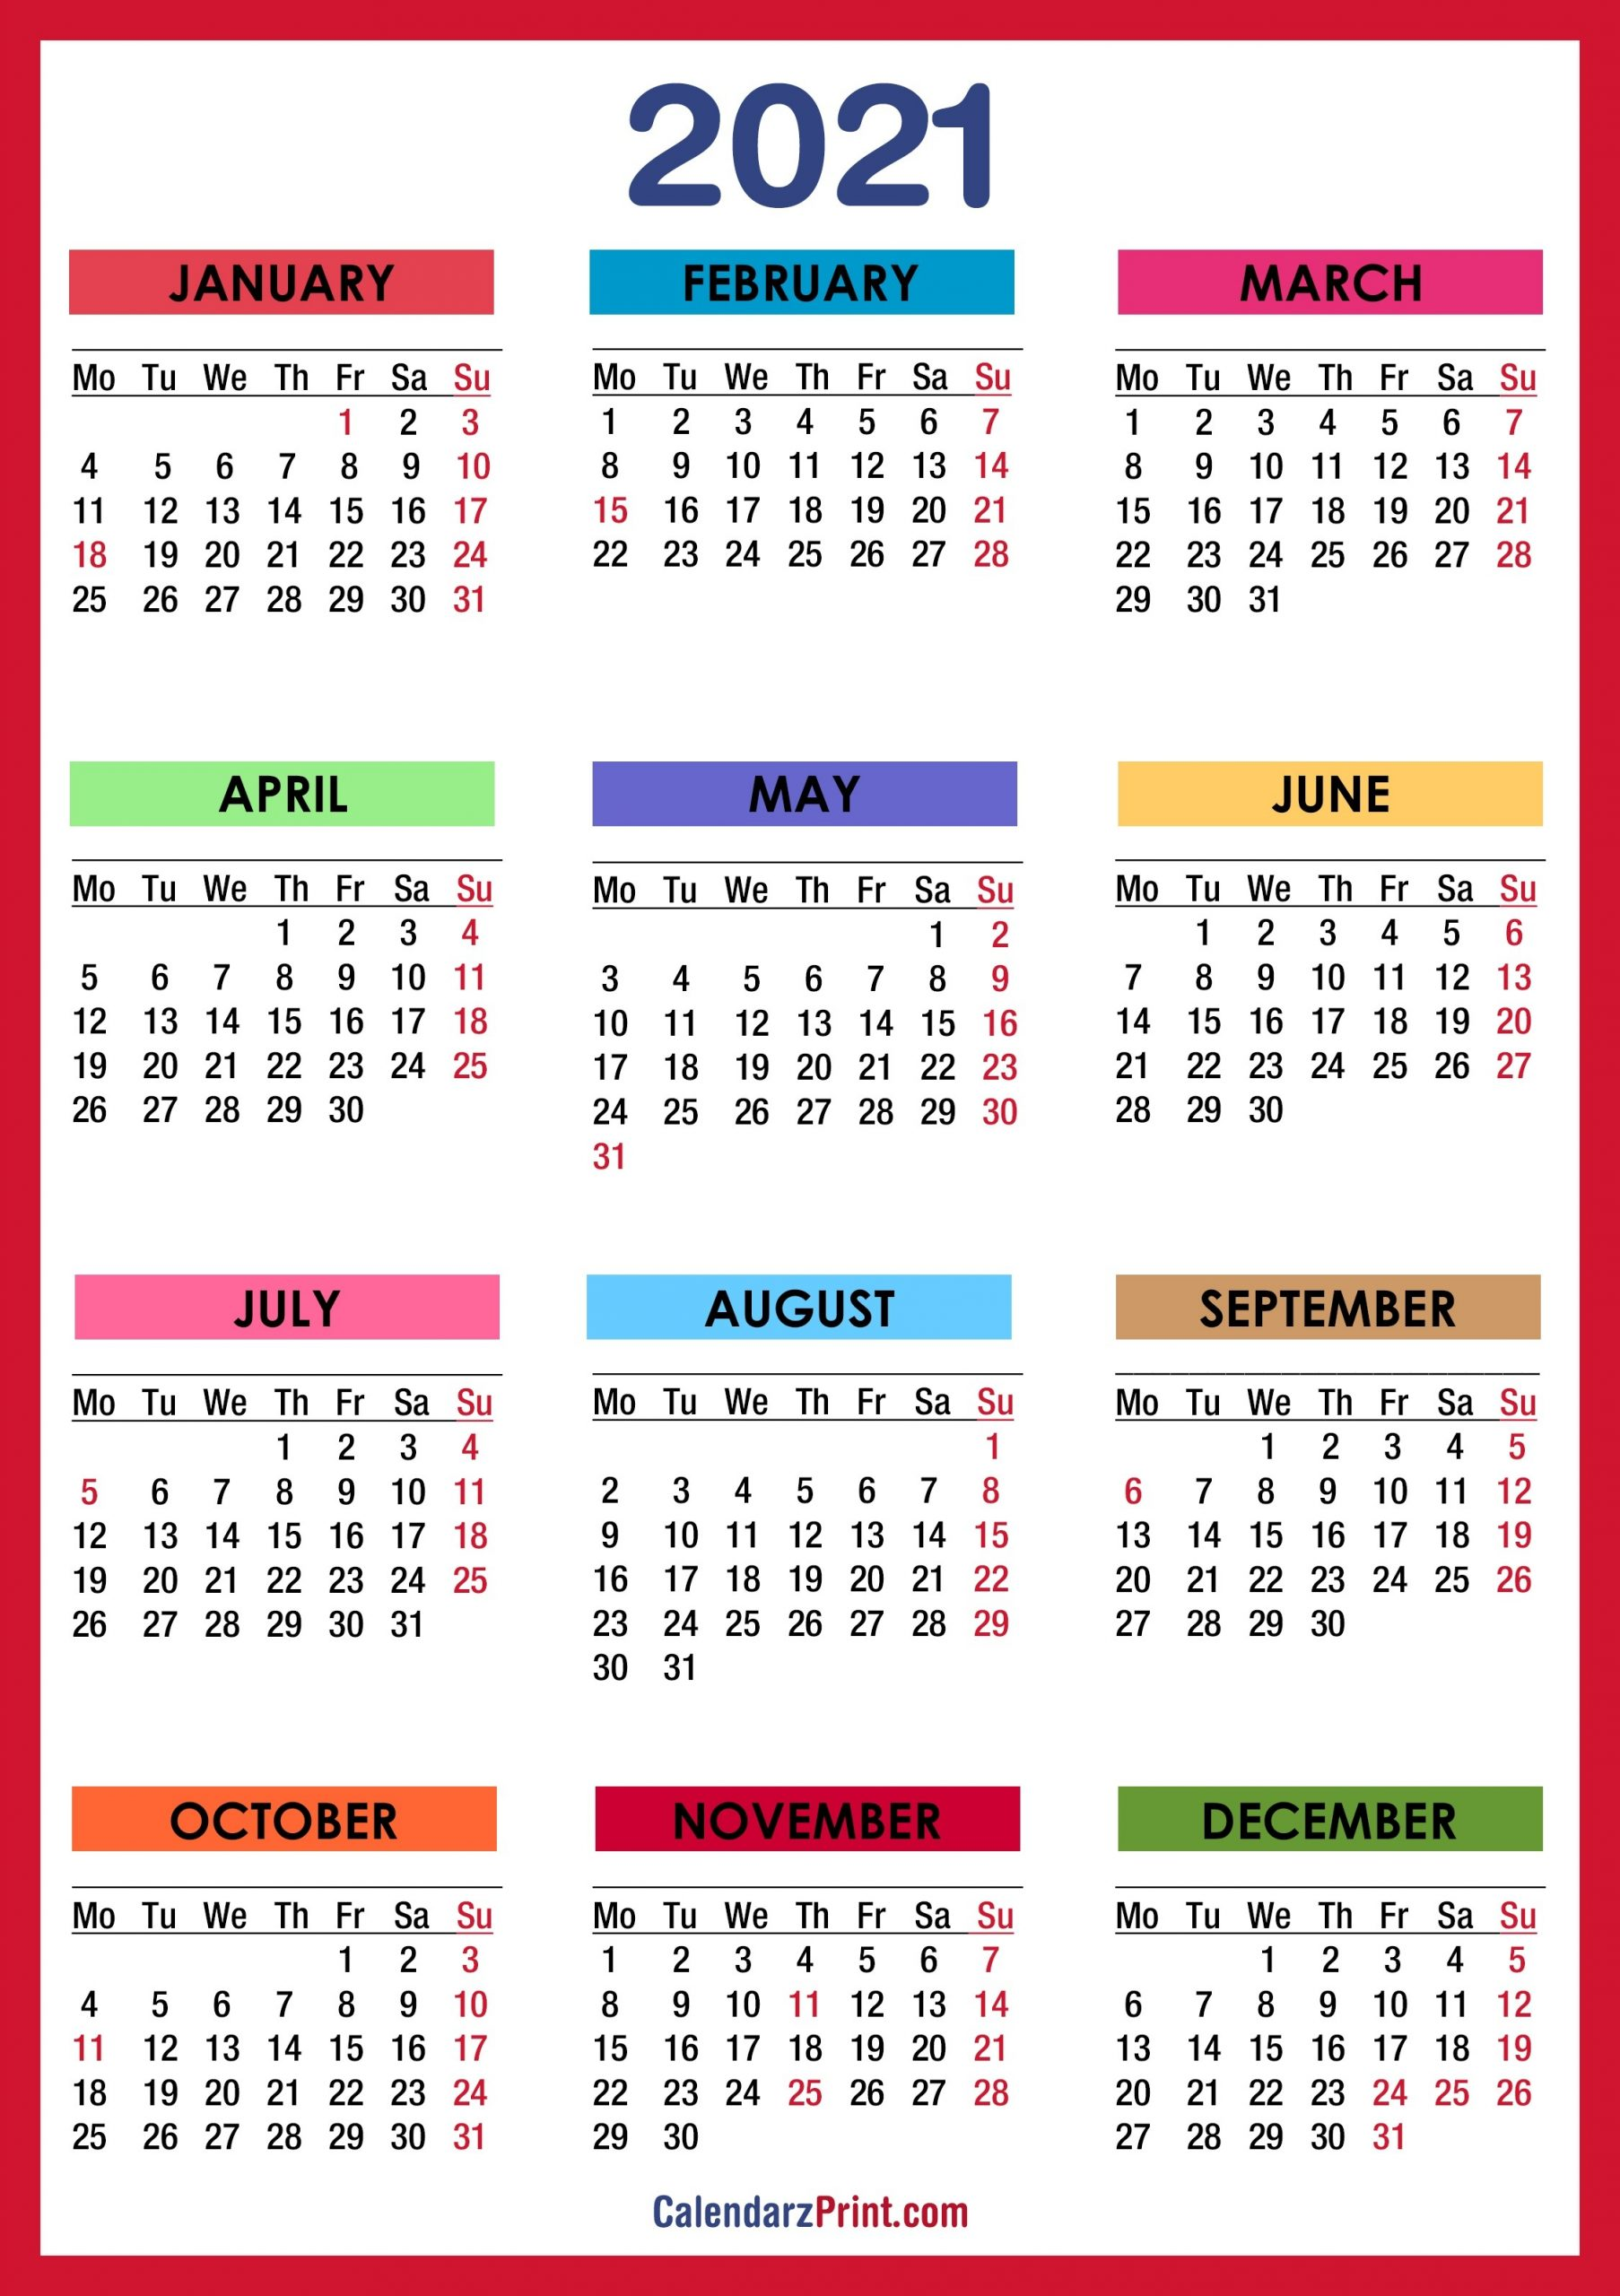 If you haven't done so already, it's time to update last year's custom photo calendar. Printable Vacation Calendar For 2021 | Calendar Template ...